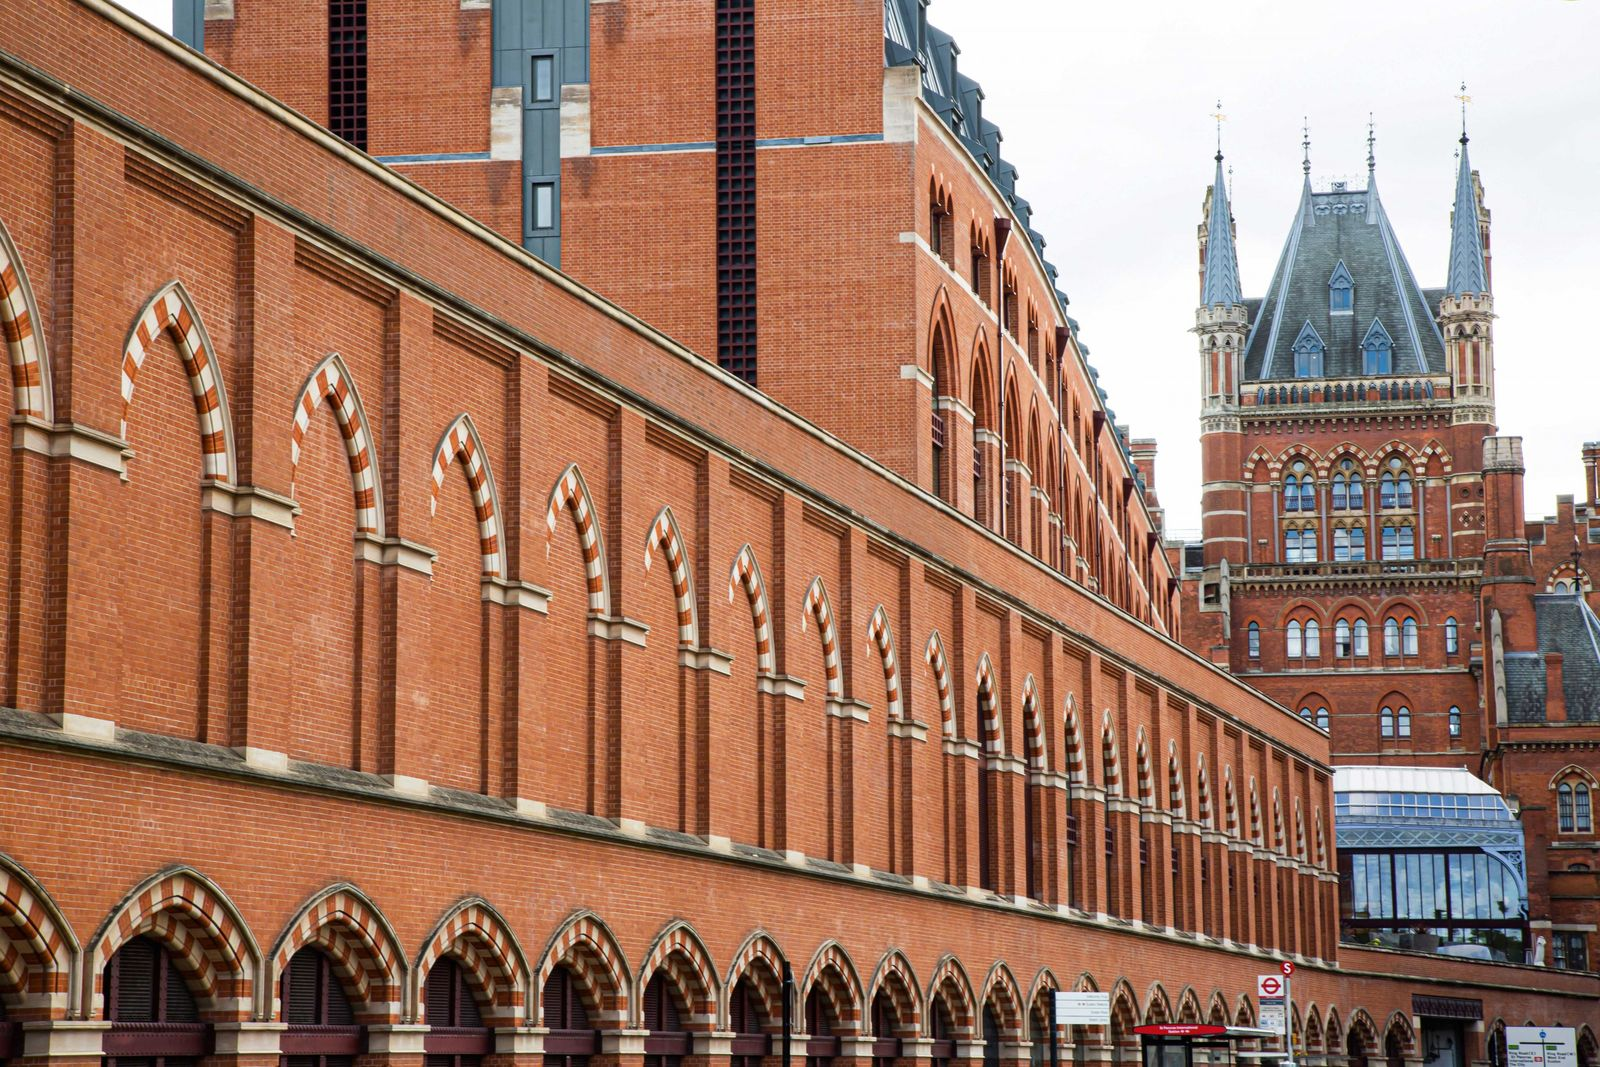 Sir John Betjeman, a railway and architecture enthusiast, led a campaign to save King's Cross' iconic ...